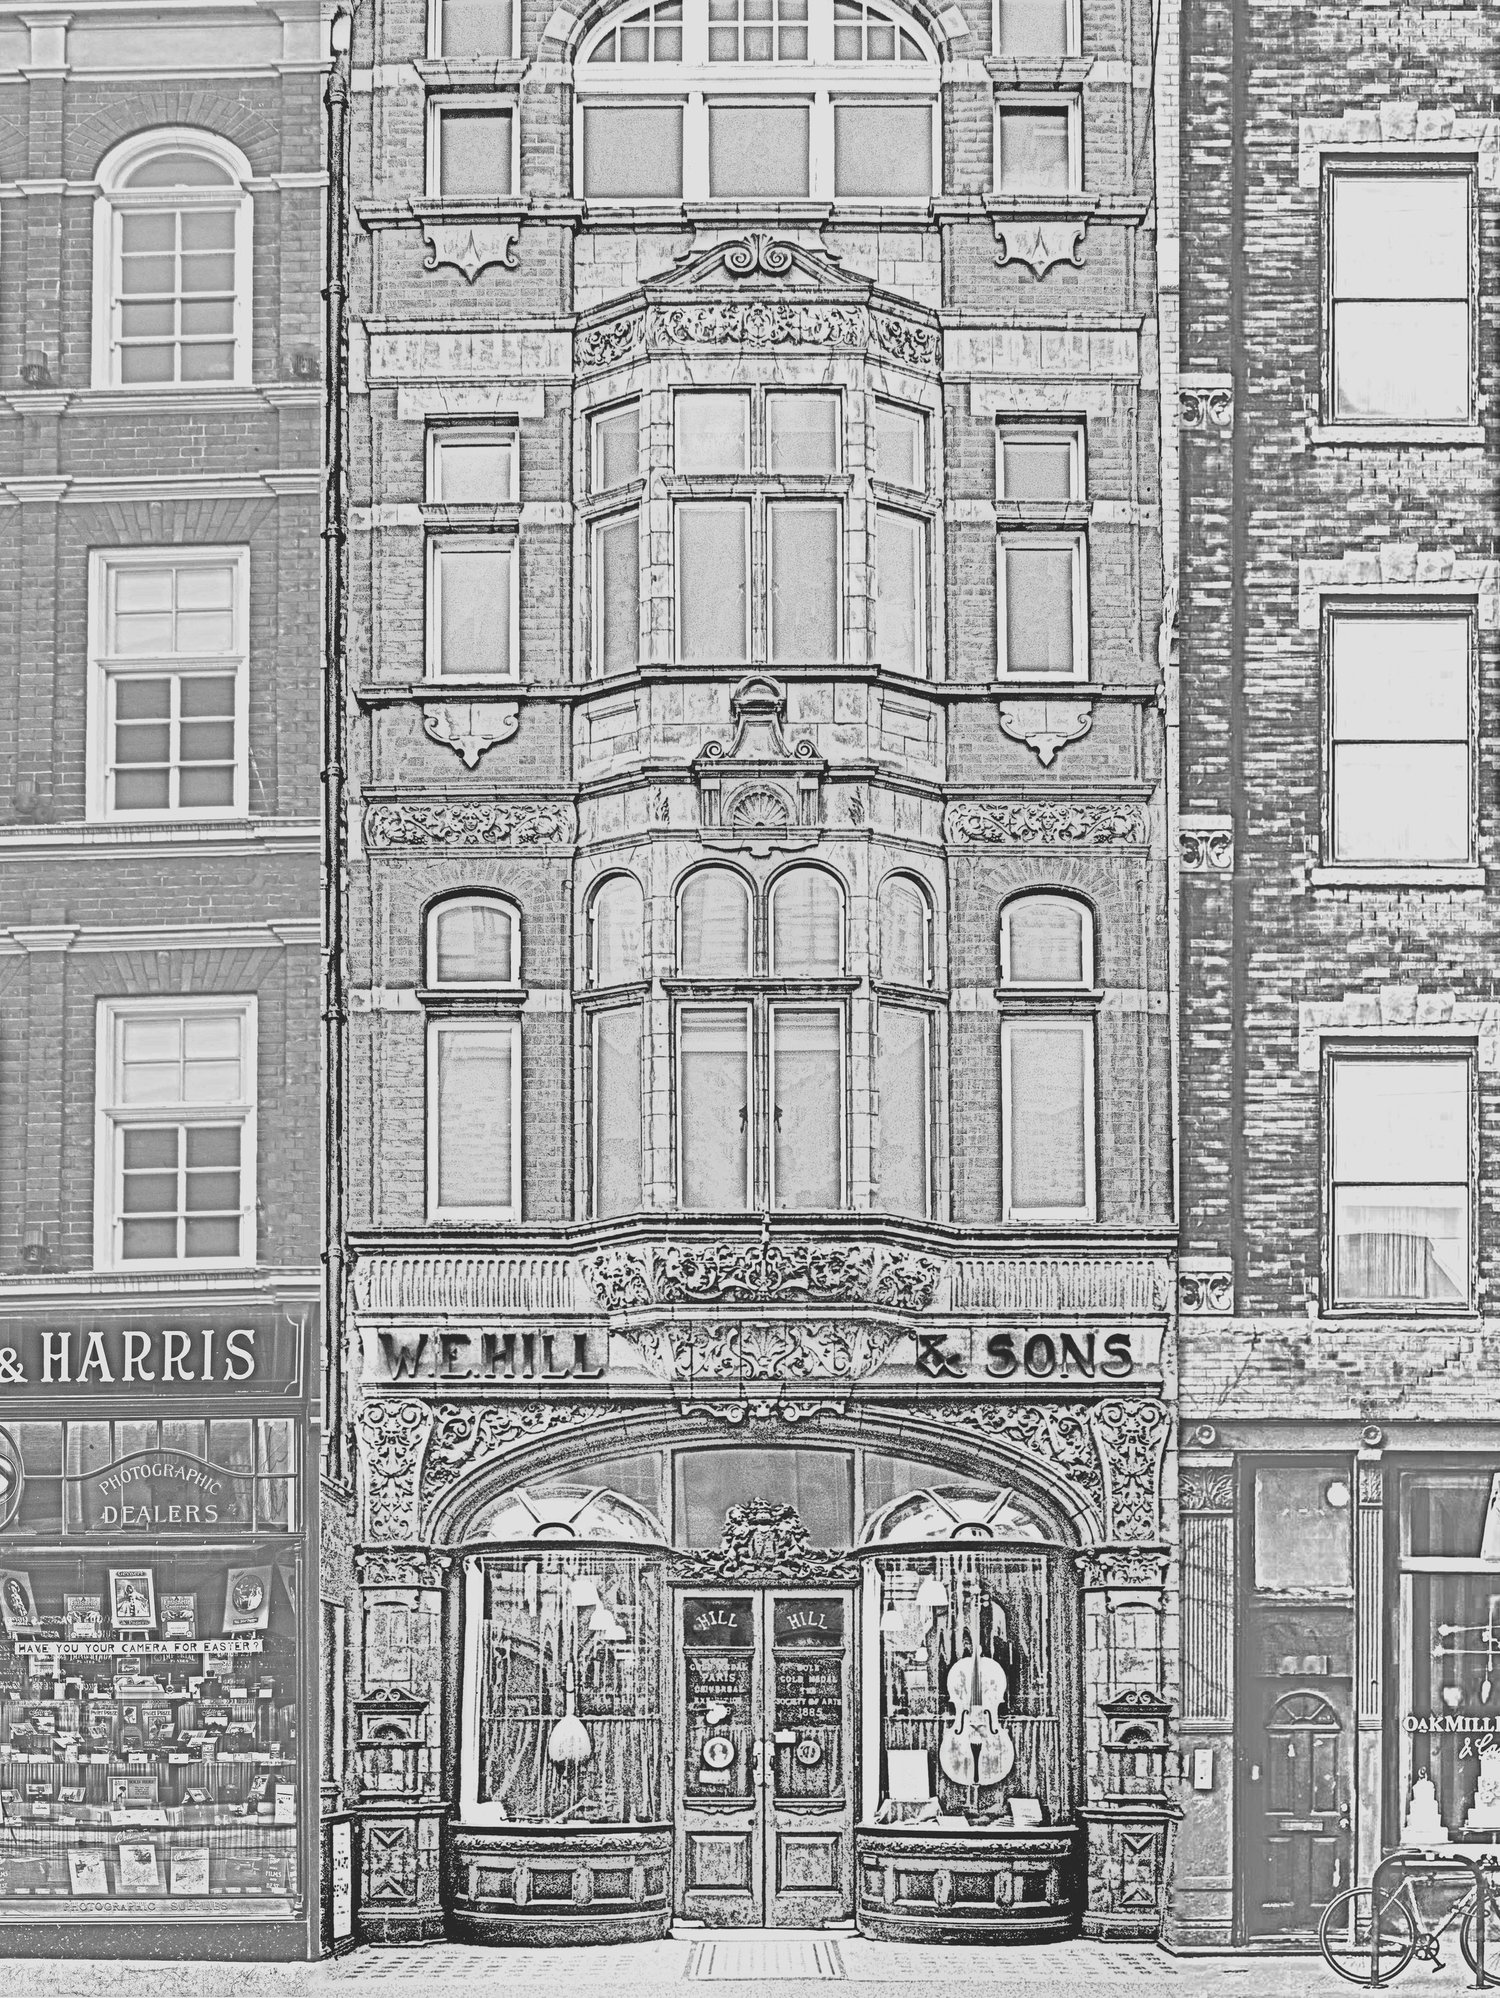 W.E. Hill & Sons - 140 New Bonst Street without border-0.jpg